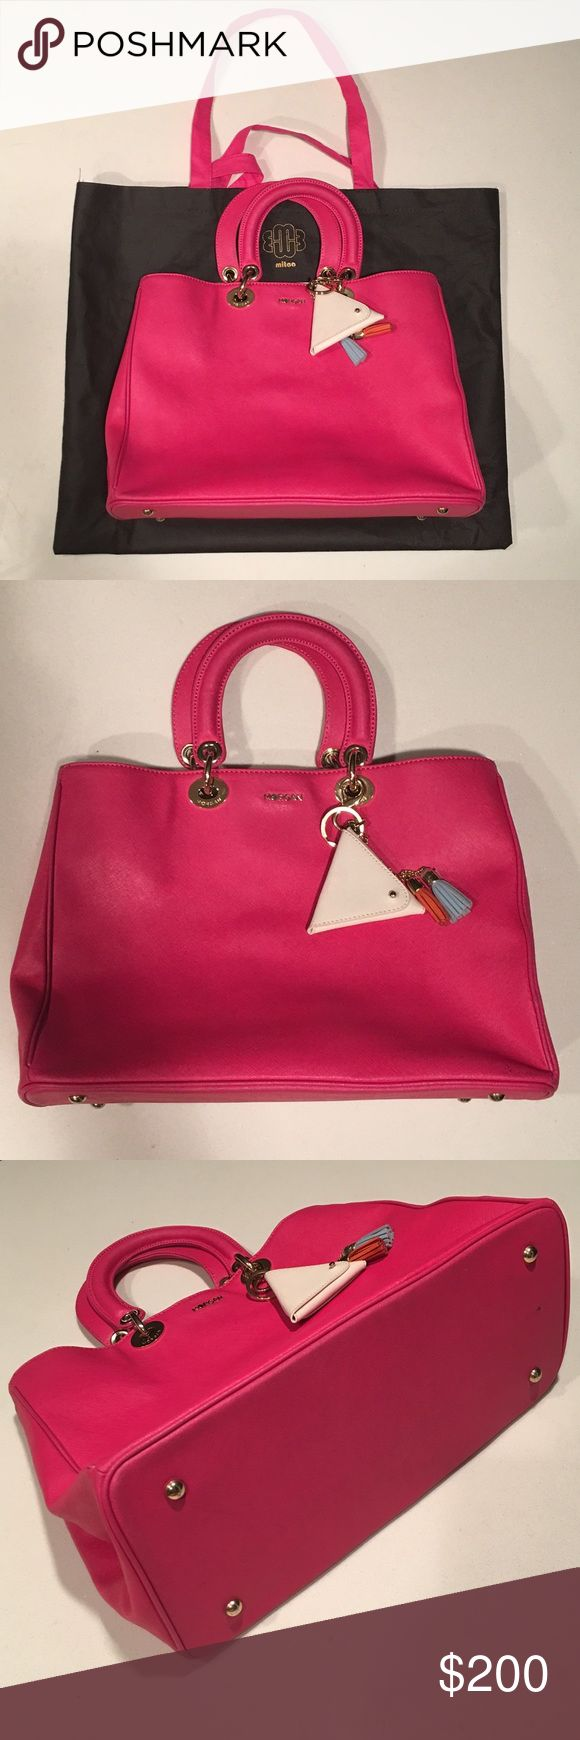 🌹GRAND SALE🌹NWOT! Morgan de Toi France Pink Bag NWOT! 100% Authentic! Brand New!! Real Leather! Comes with the coin pouch/keychain & dust bag! Morgan de Toi Bags Satchels